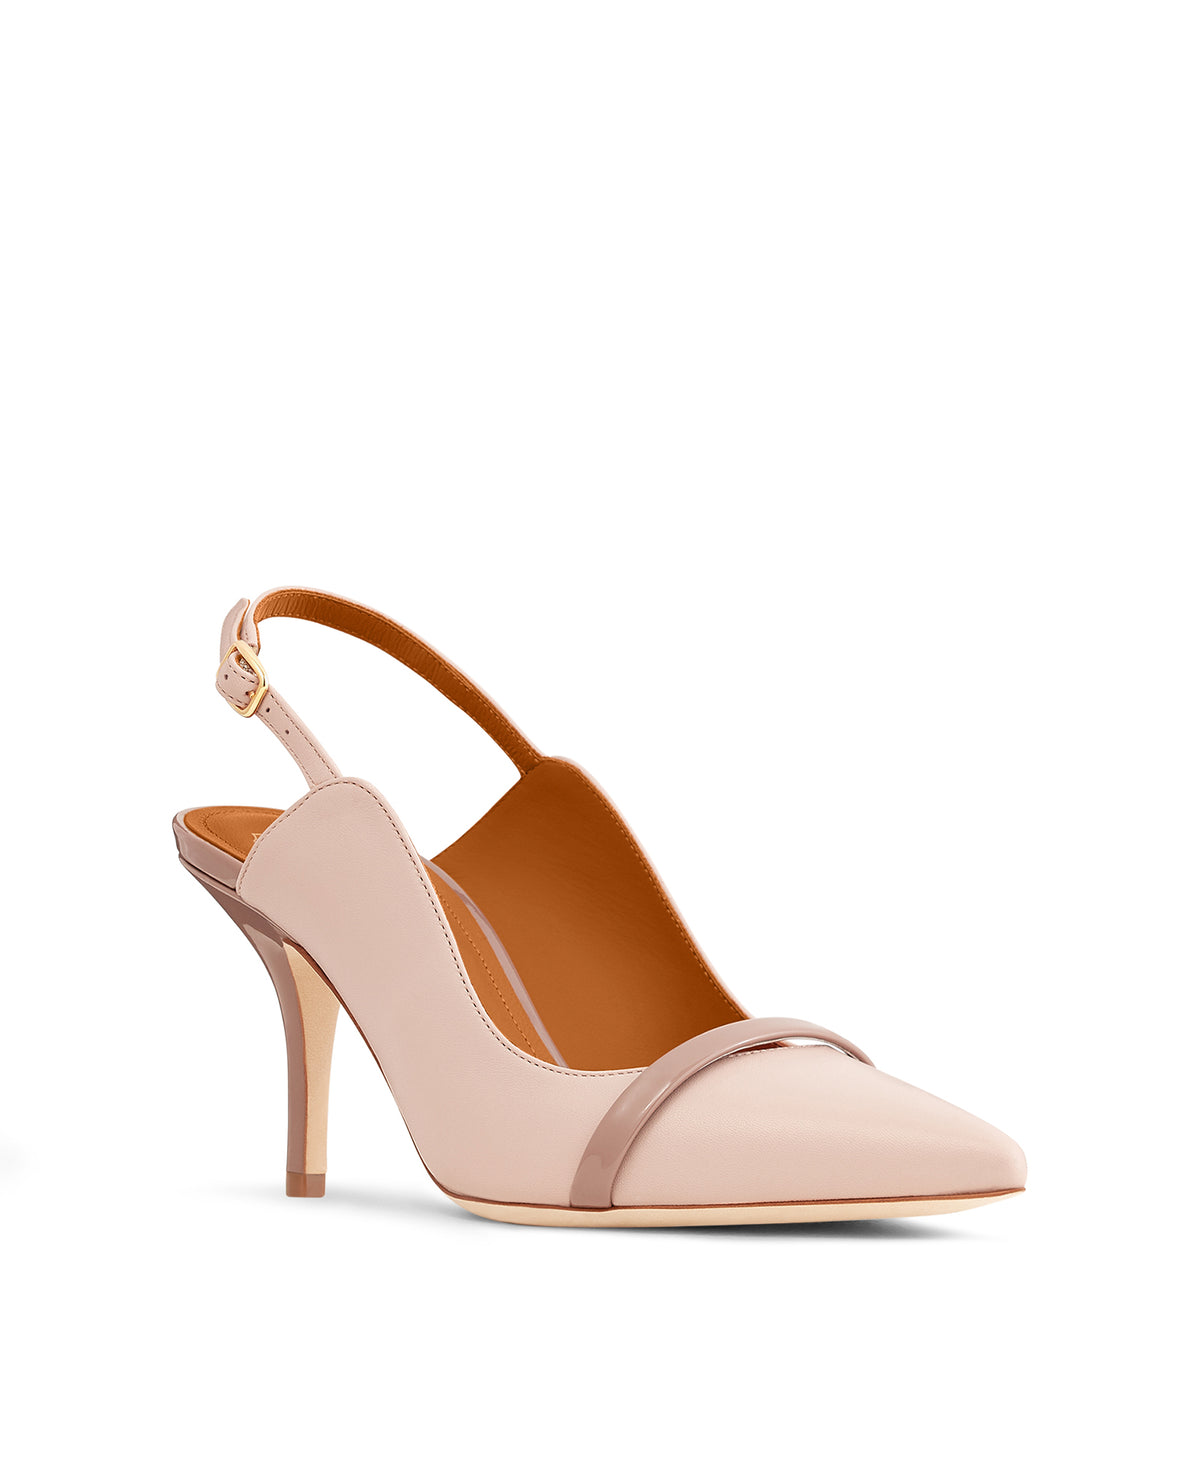 Marion 70mm - Dusty Rose Nappa Brown Patent